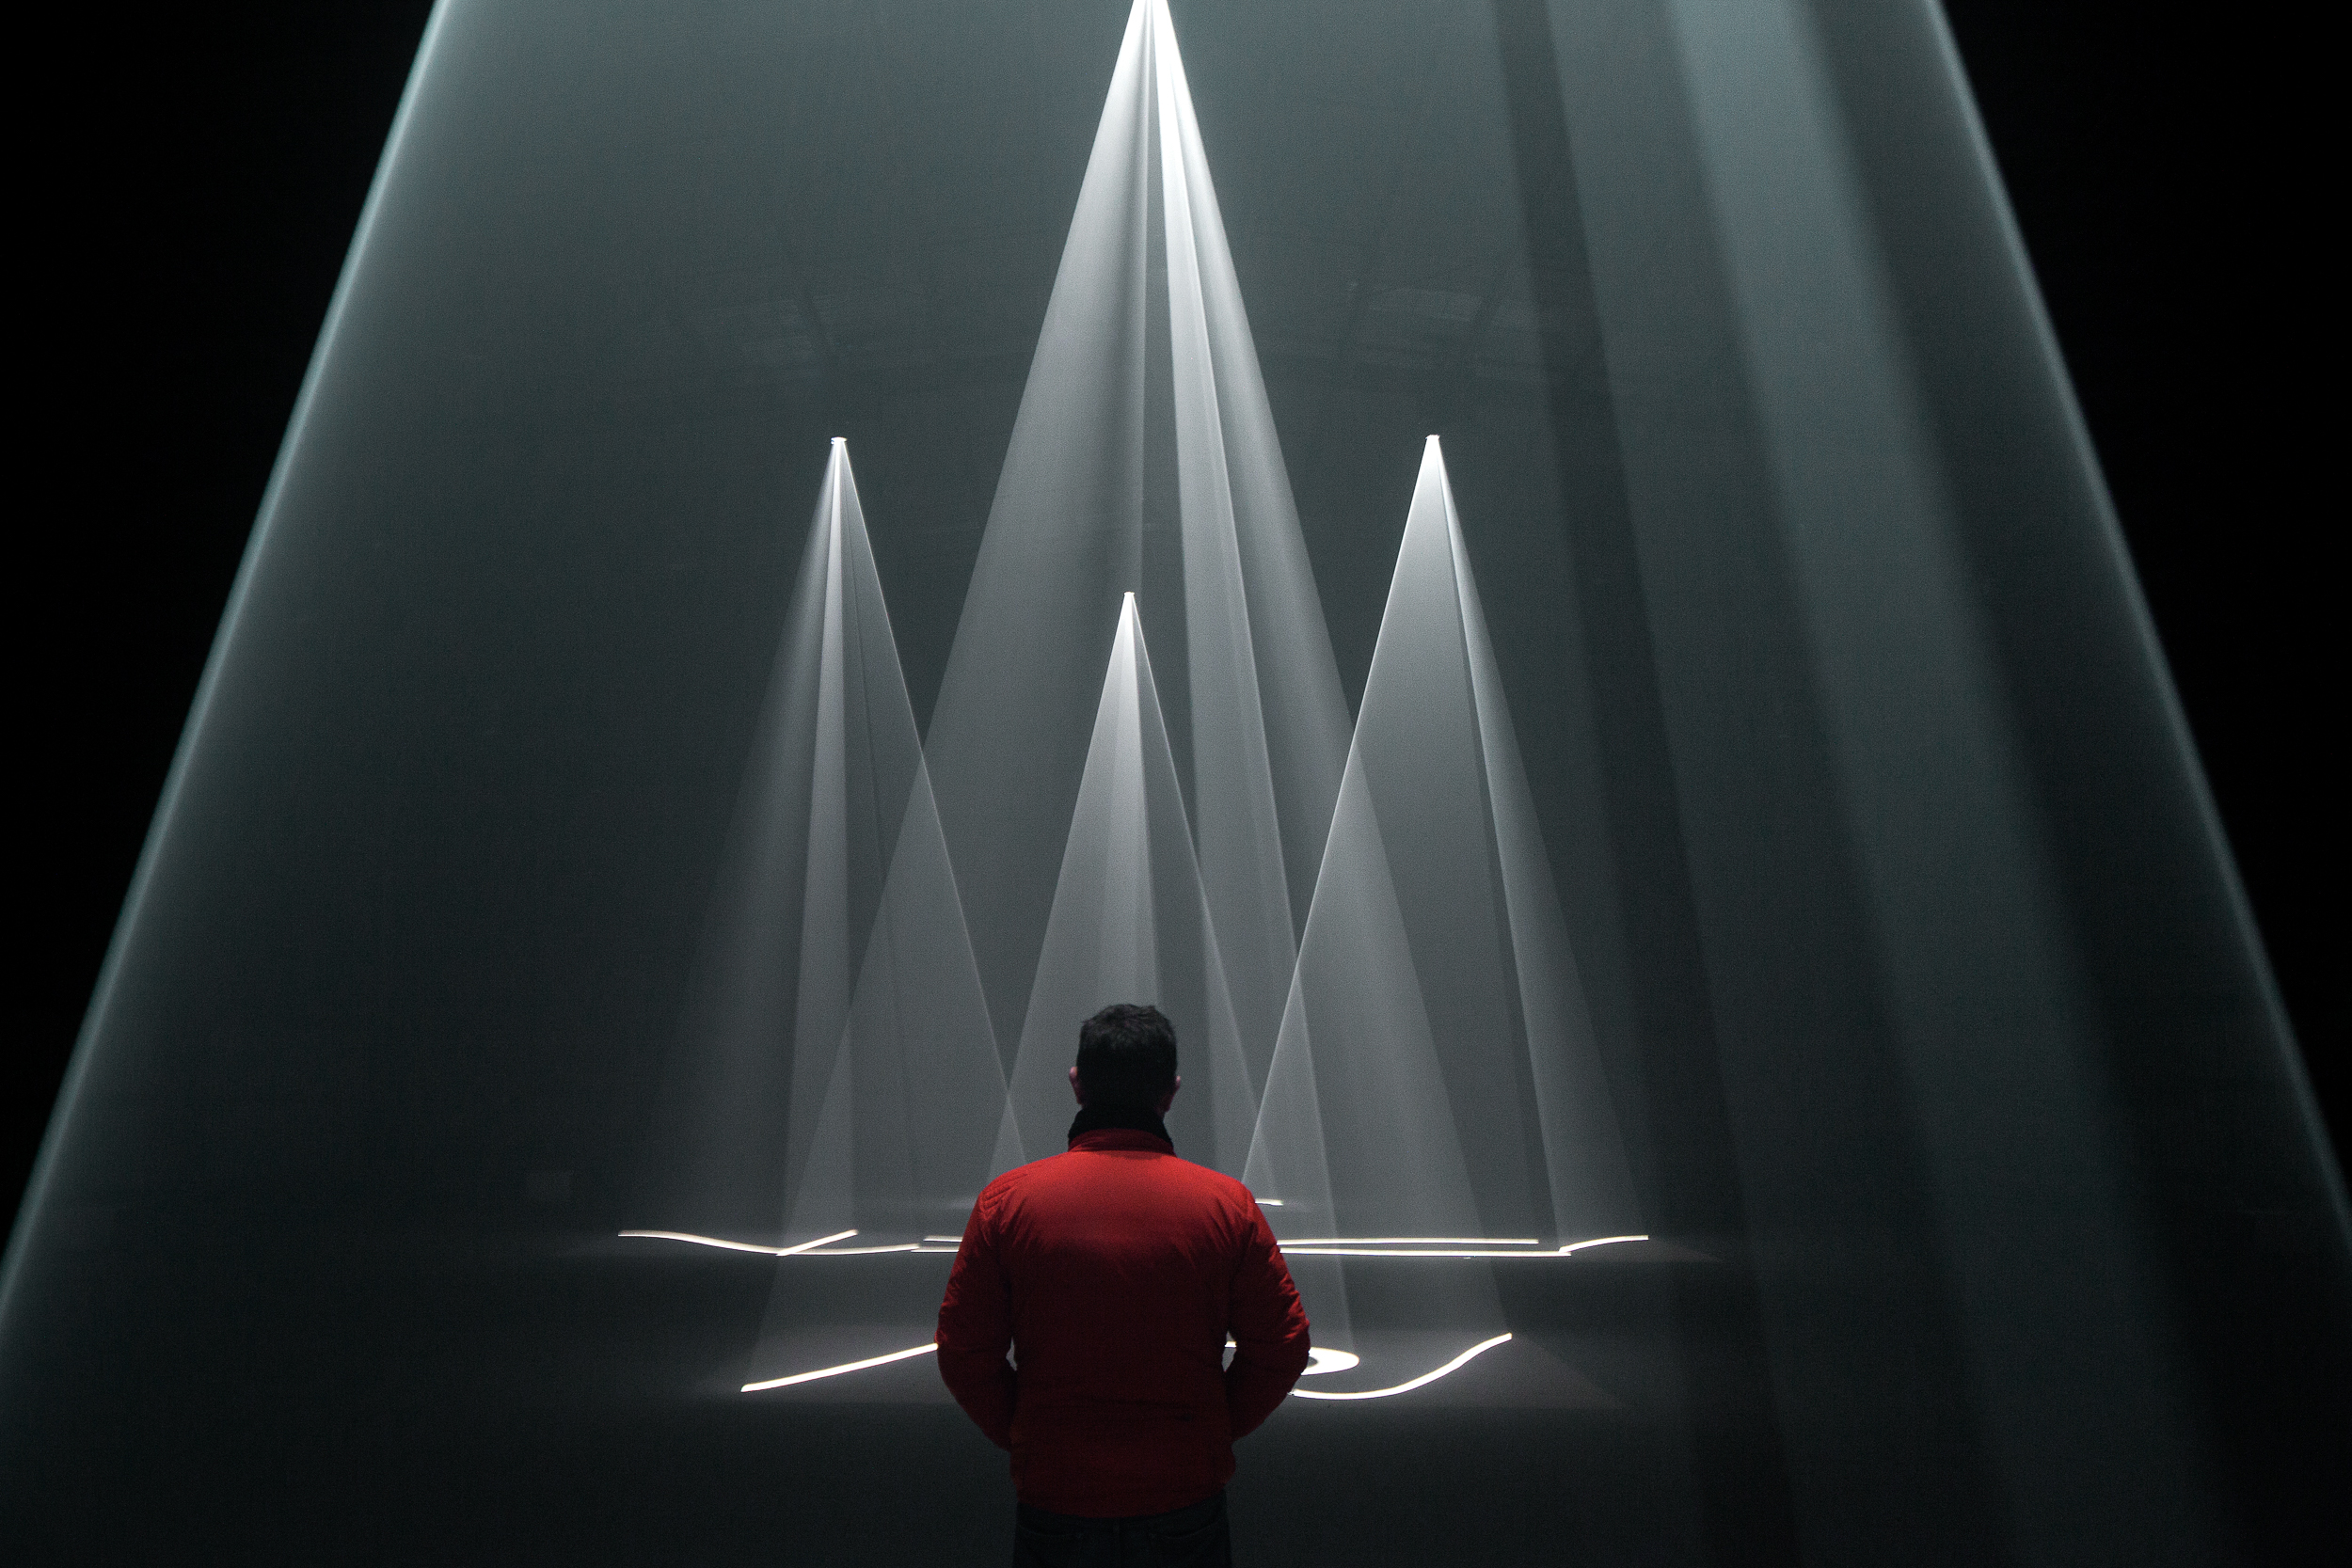 Solid Light Works  Anthony McCall Installation view, Dark Mofo 2015, Macquarie Point, Hobart, June 2015  © Anthony McCall